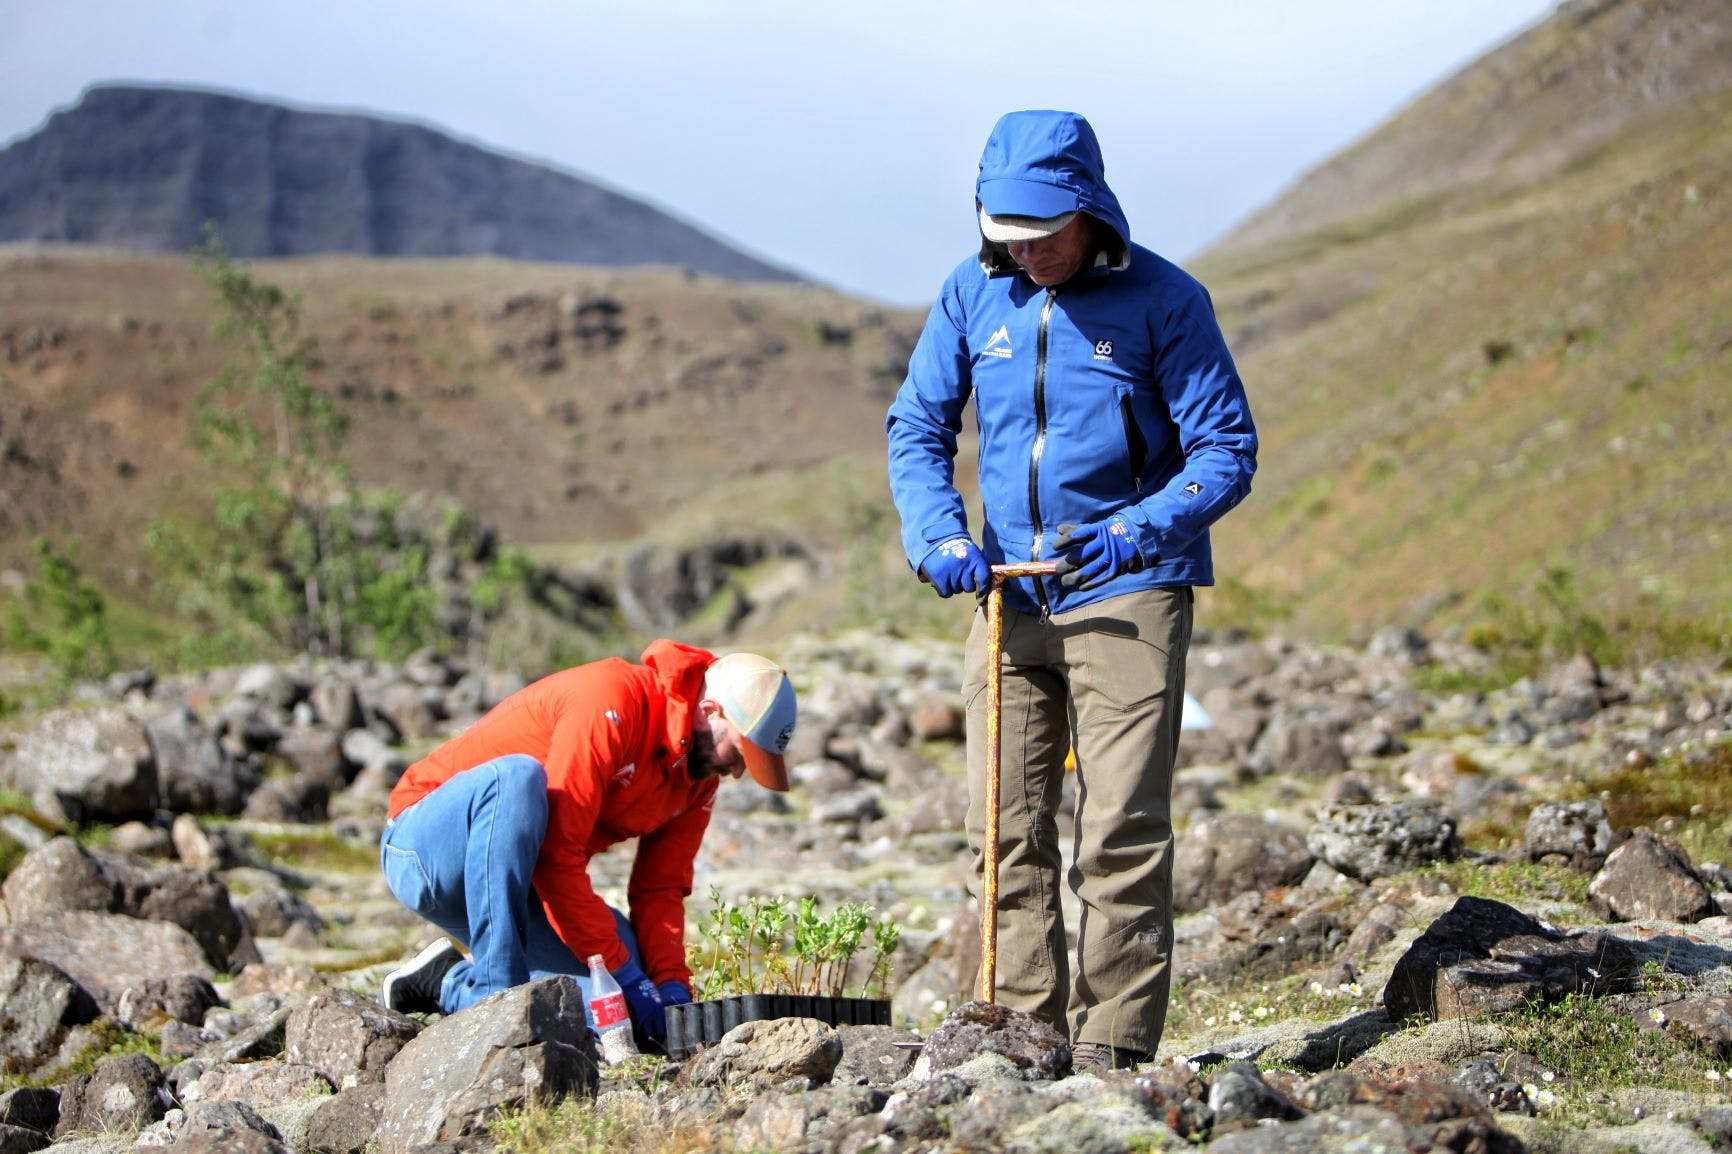 Two men planting a tree in Iceland